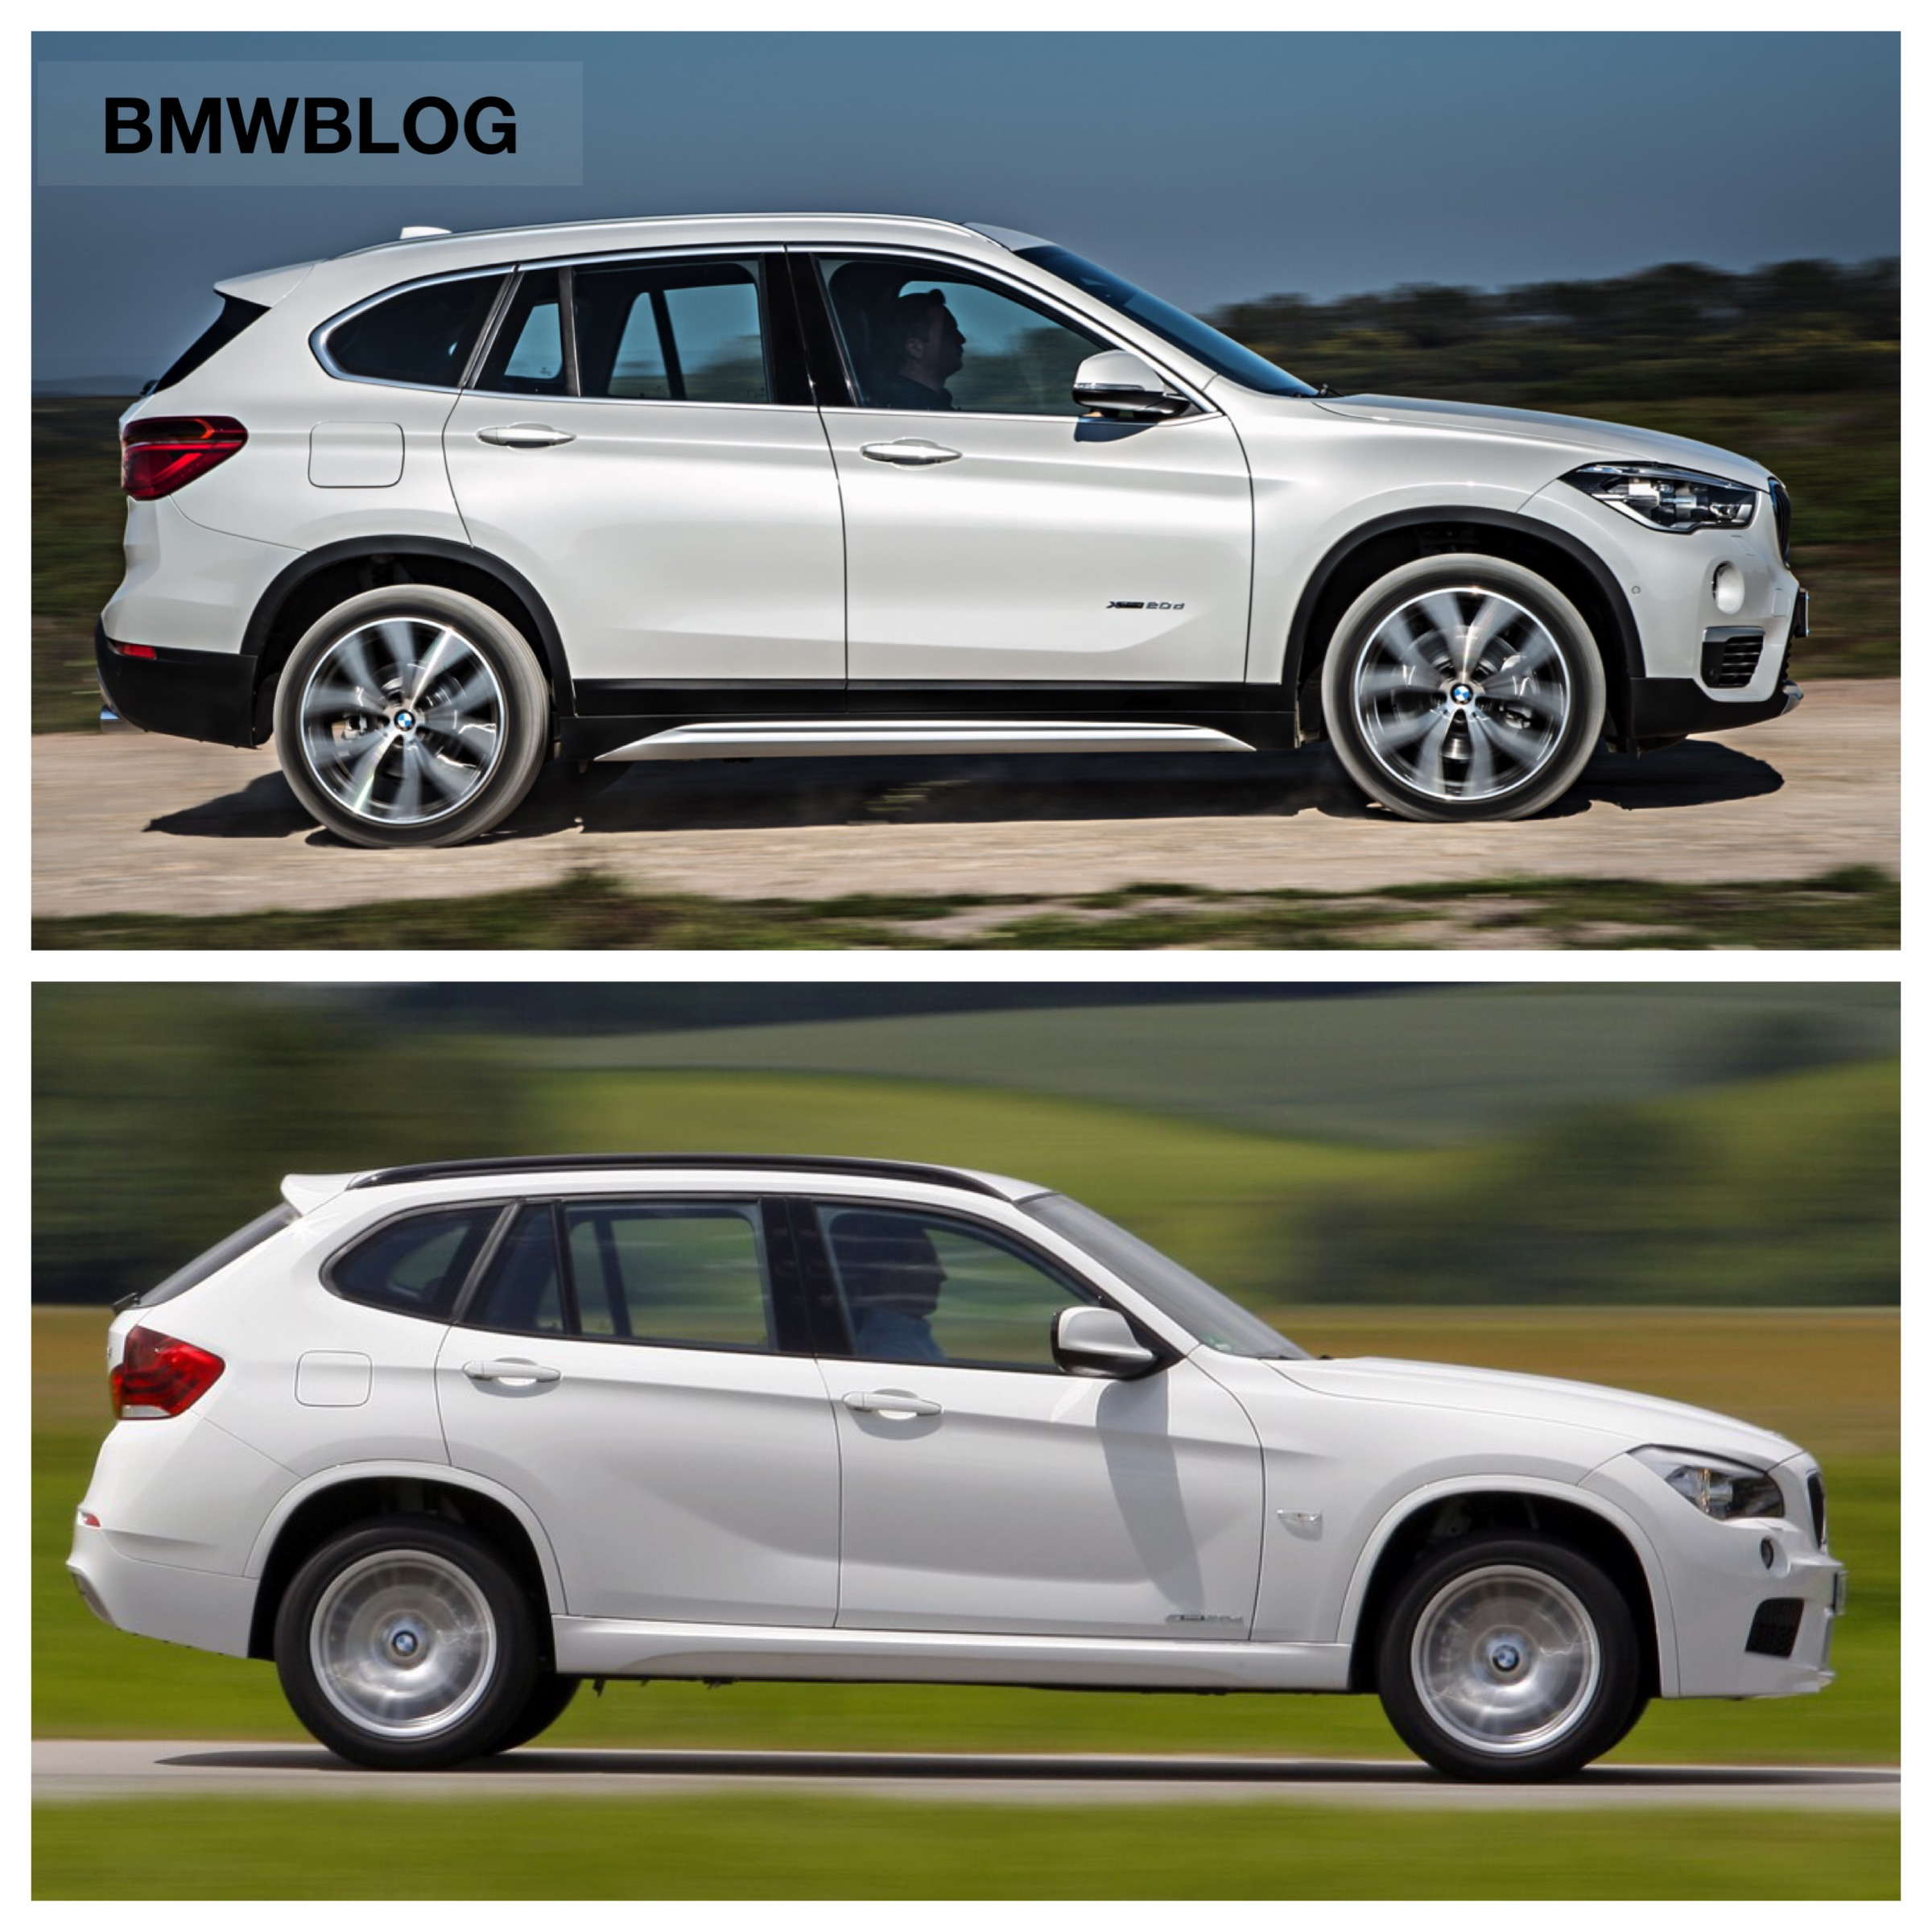 e84 bmw x1 vs 2016 bmw x1 f48 photo comparison. Black Bedroom Furniture Sets. Home Design Ideas